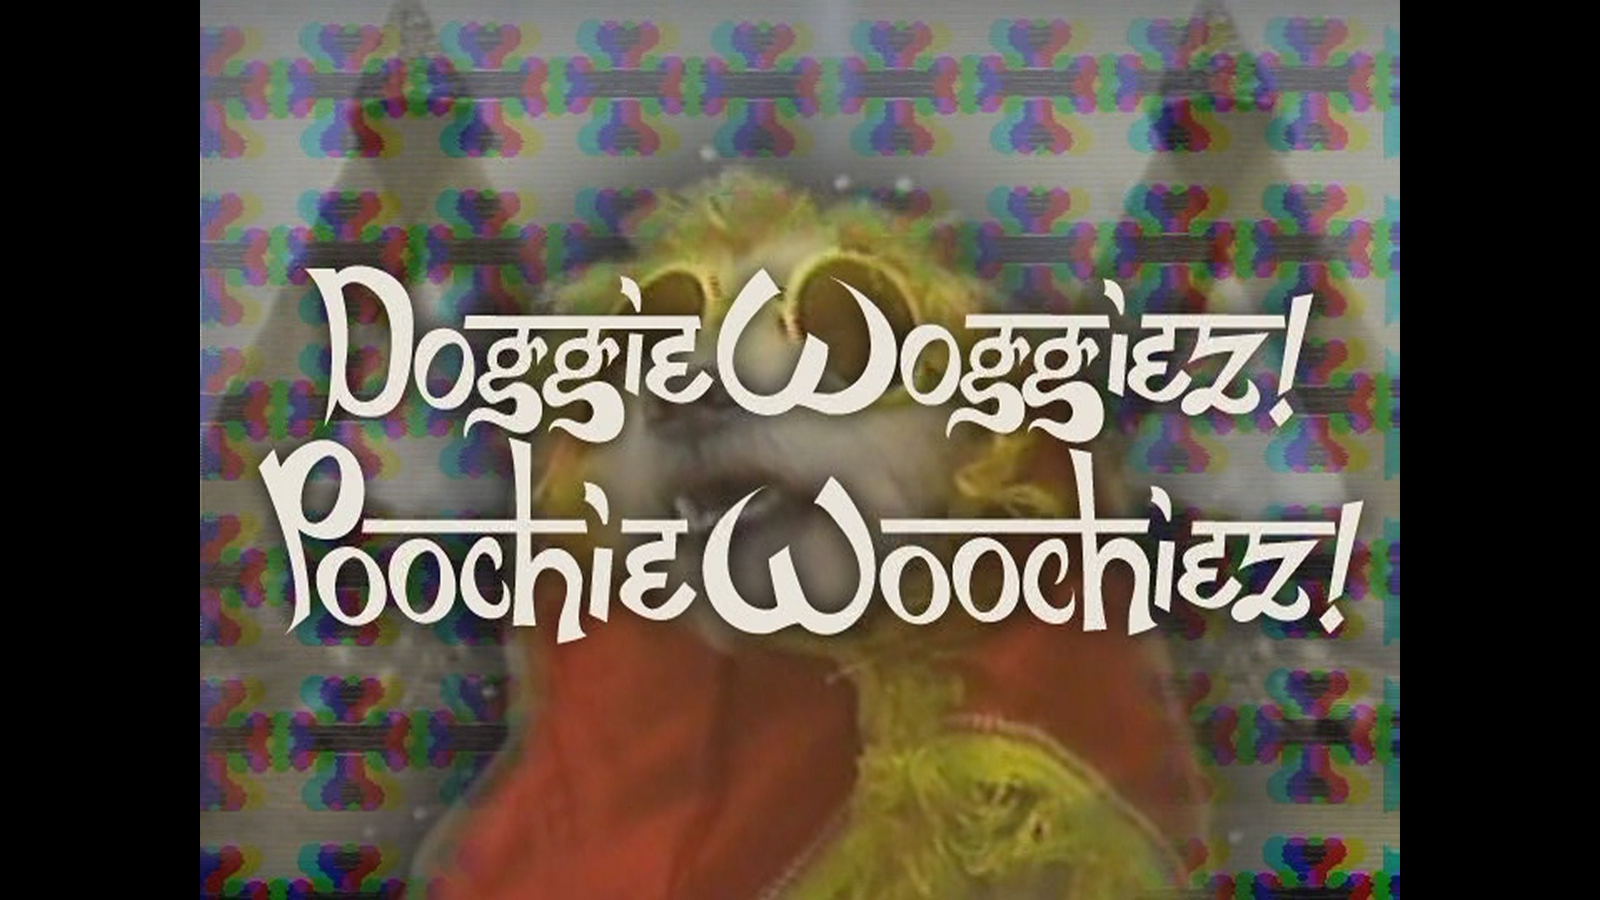 everything is terrible in doggie woggiez poochie woochie Doggie woggiez poochie woochiez: all dogs go on tour 1,911 likes dog meets boy dog falls in love boy falls in love both die one goes to heaven.